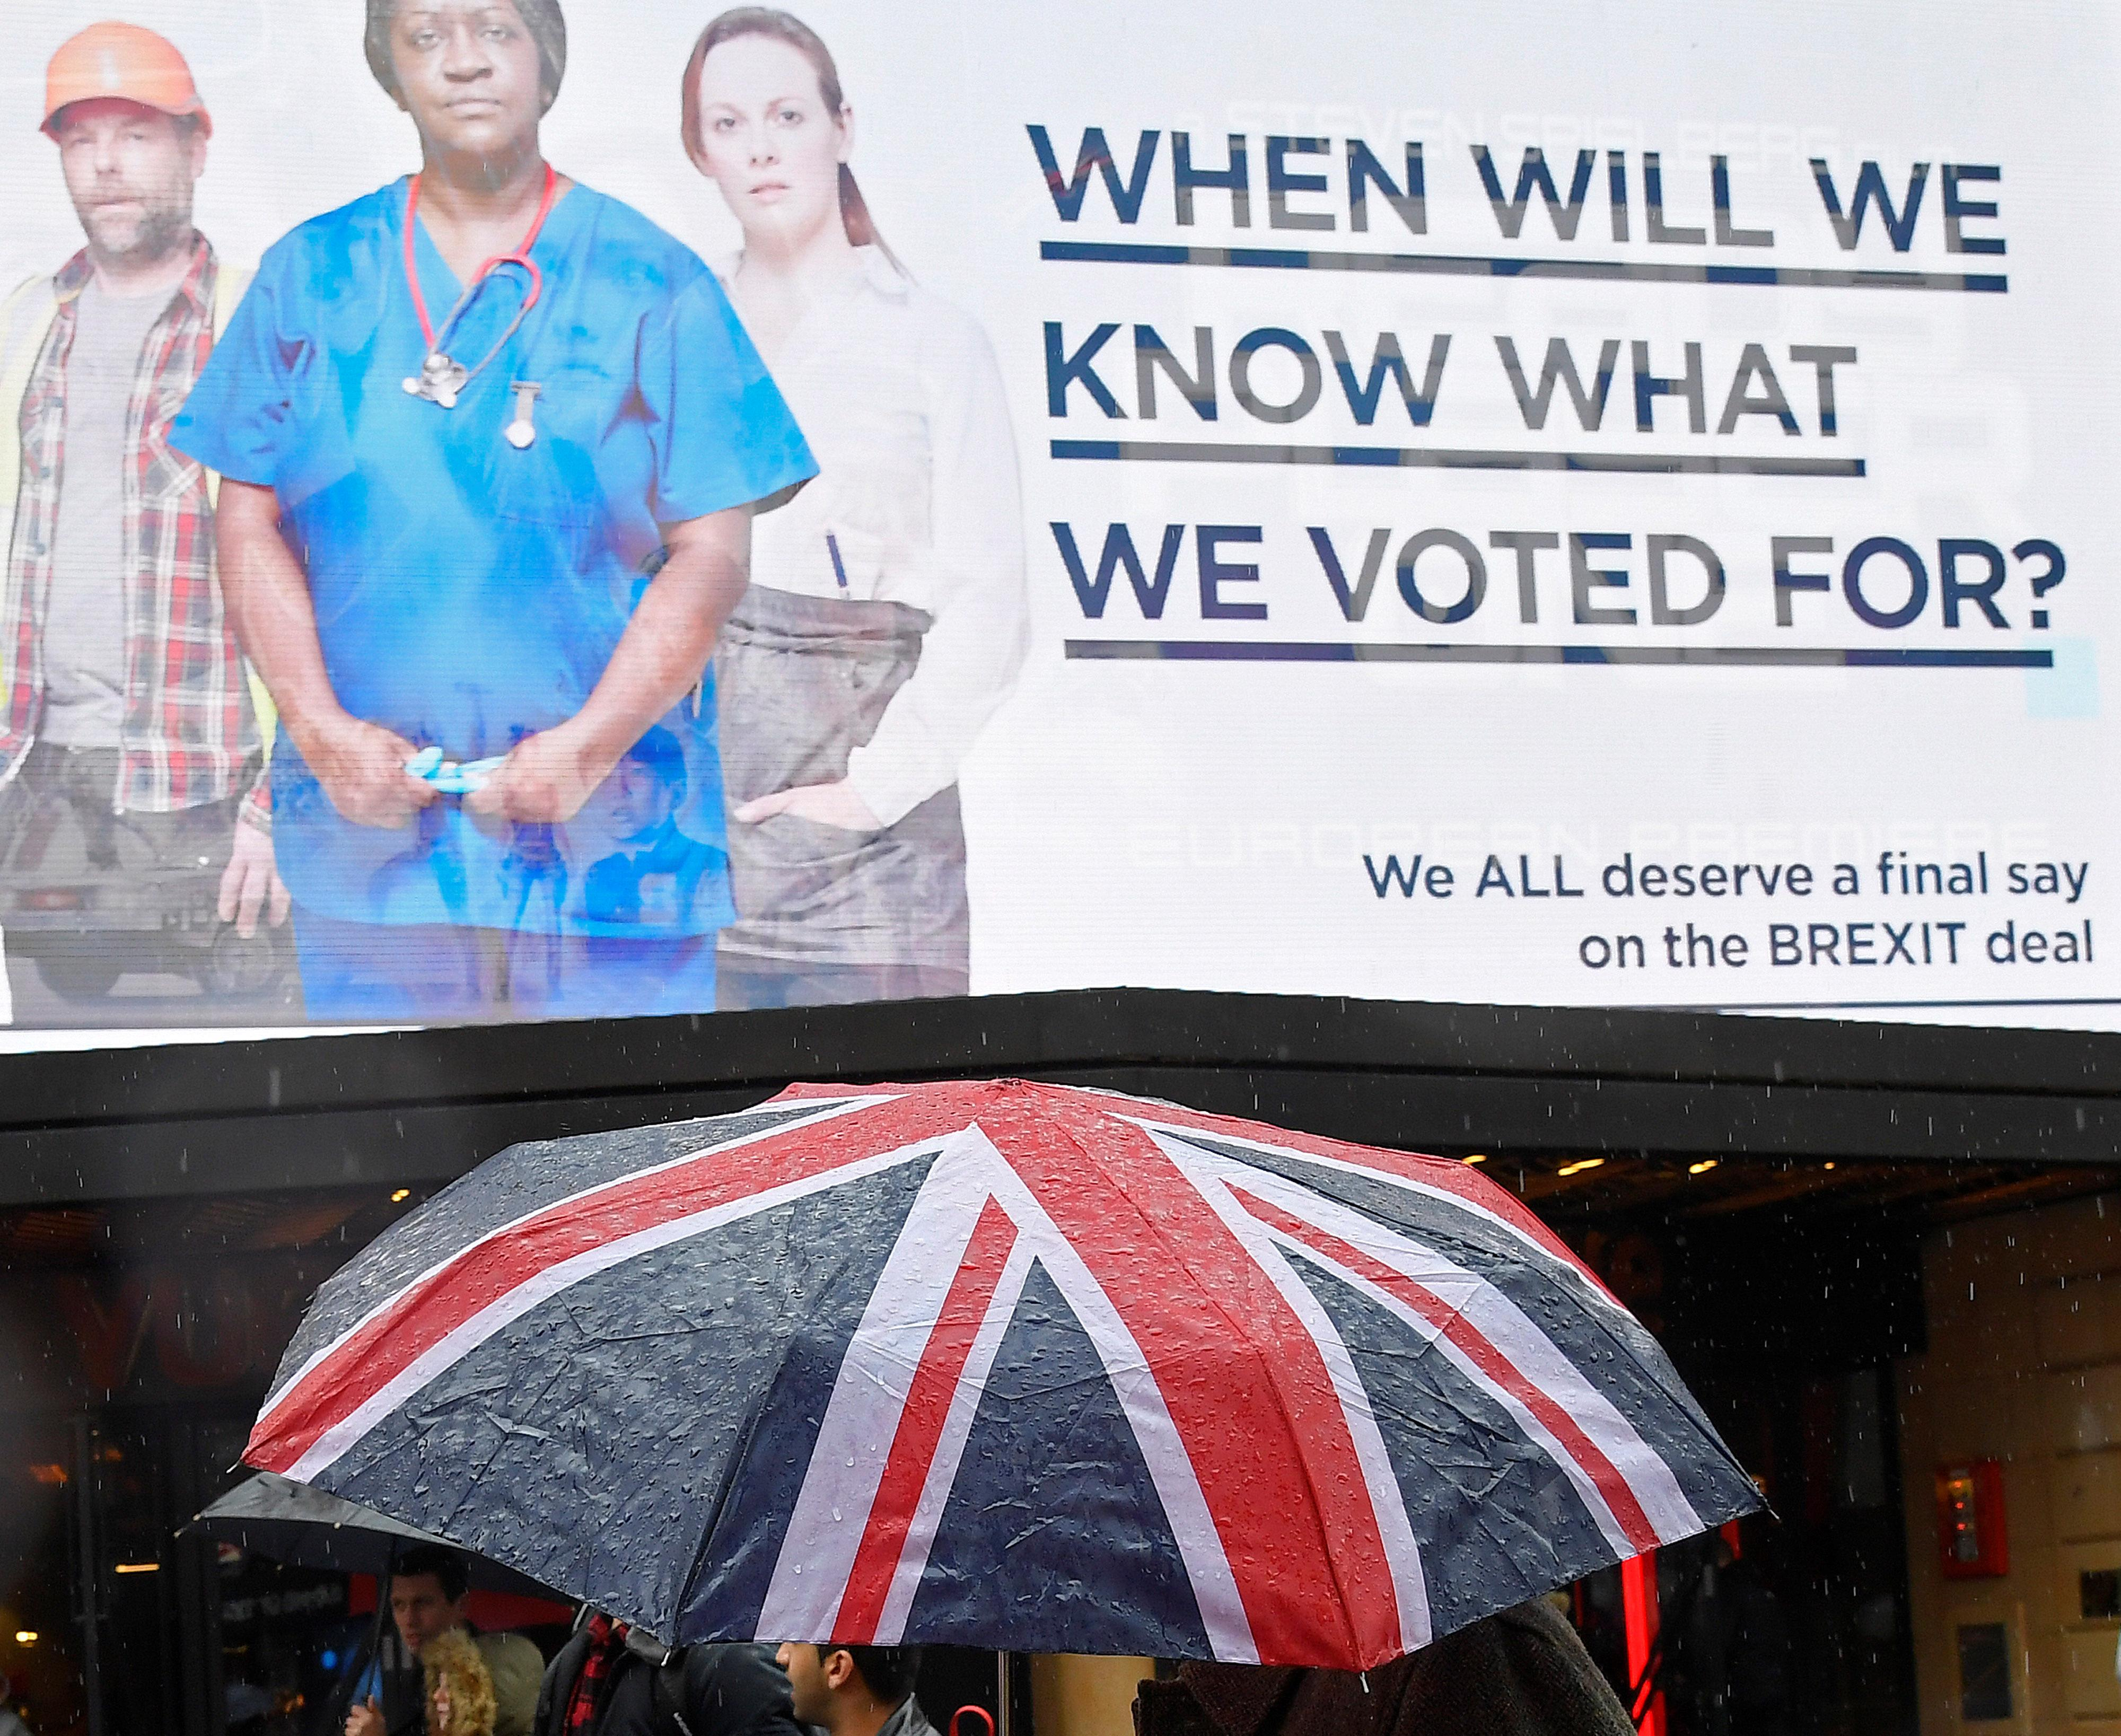 A pedestrian shields himself with a British union flag umbrella as he passes a billboard with a Brexit related campaign slogan in Leicester Square, London, Britain, March 29, 2018. Toby Melville